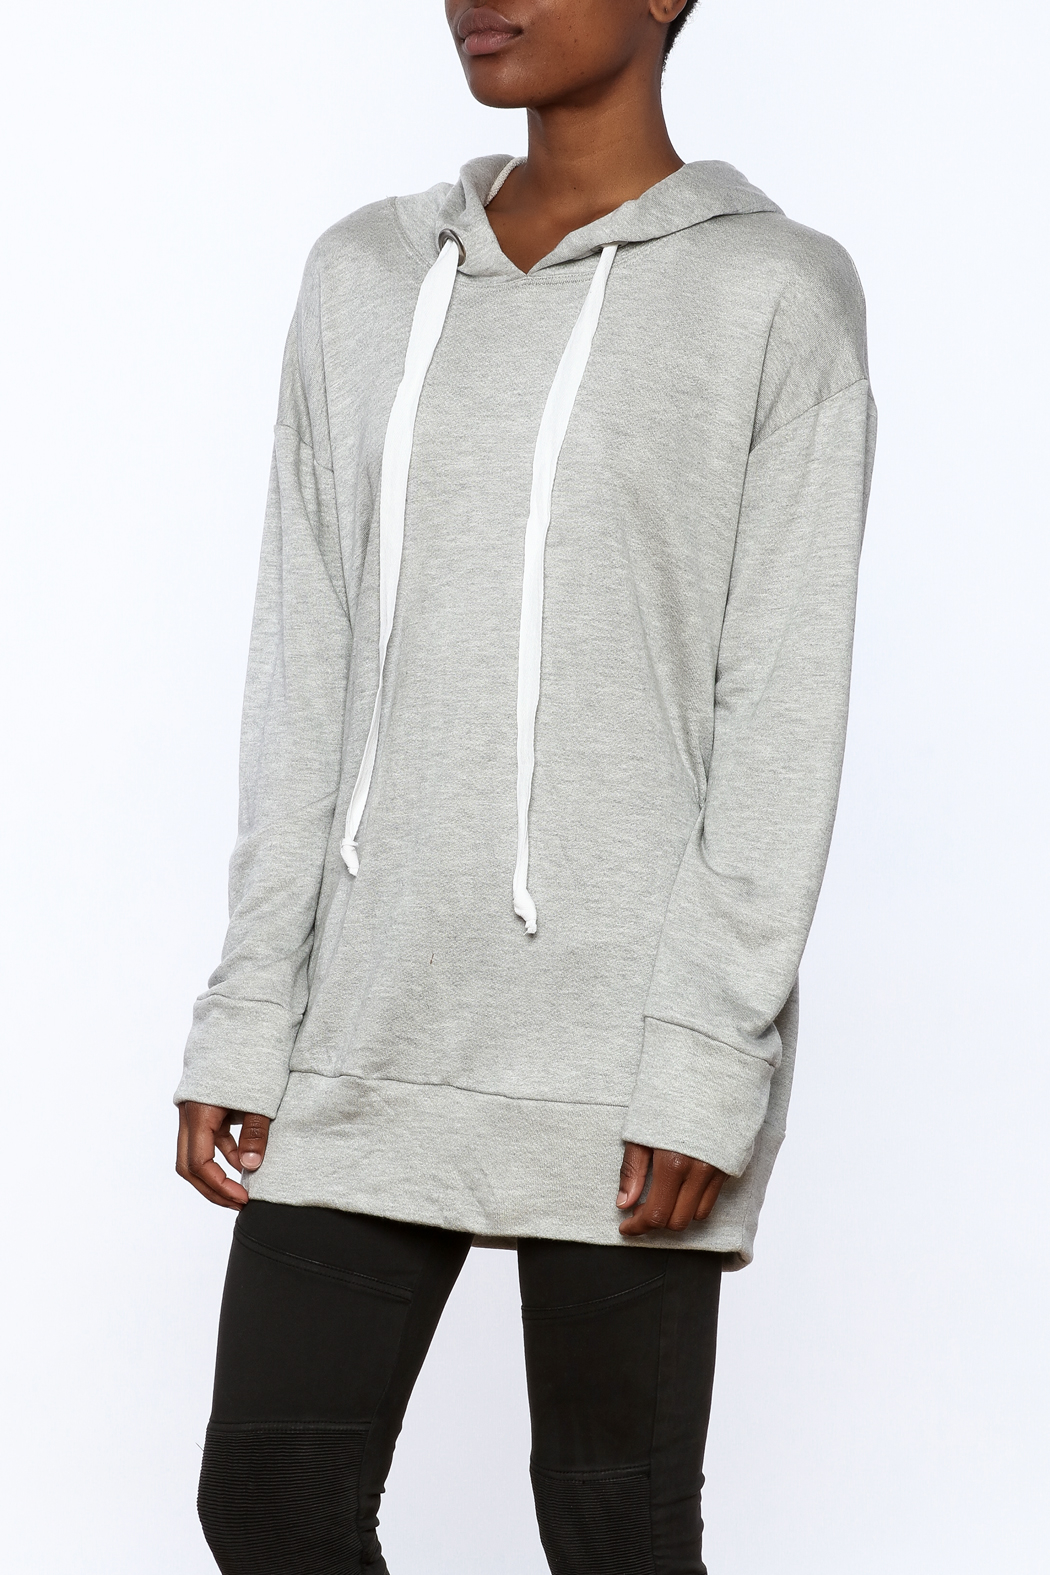 Audrey Grey Hooded Tunic Dress - Main Image